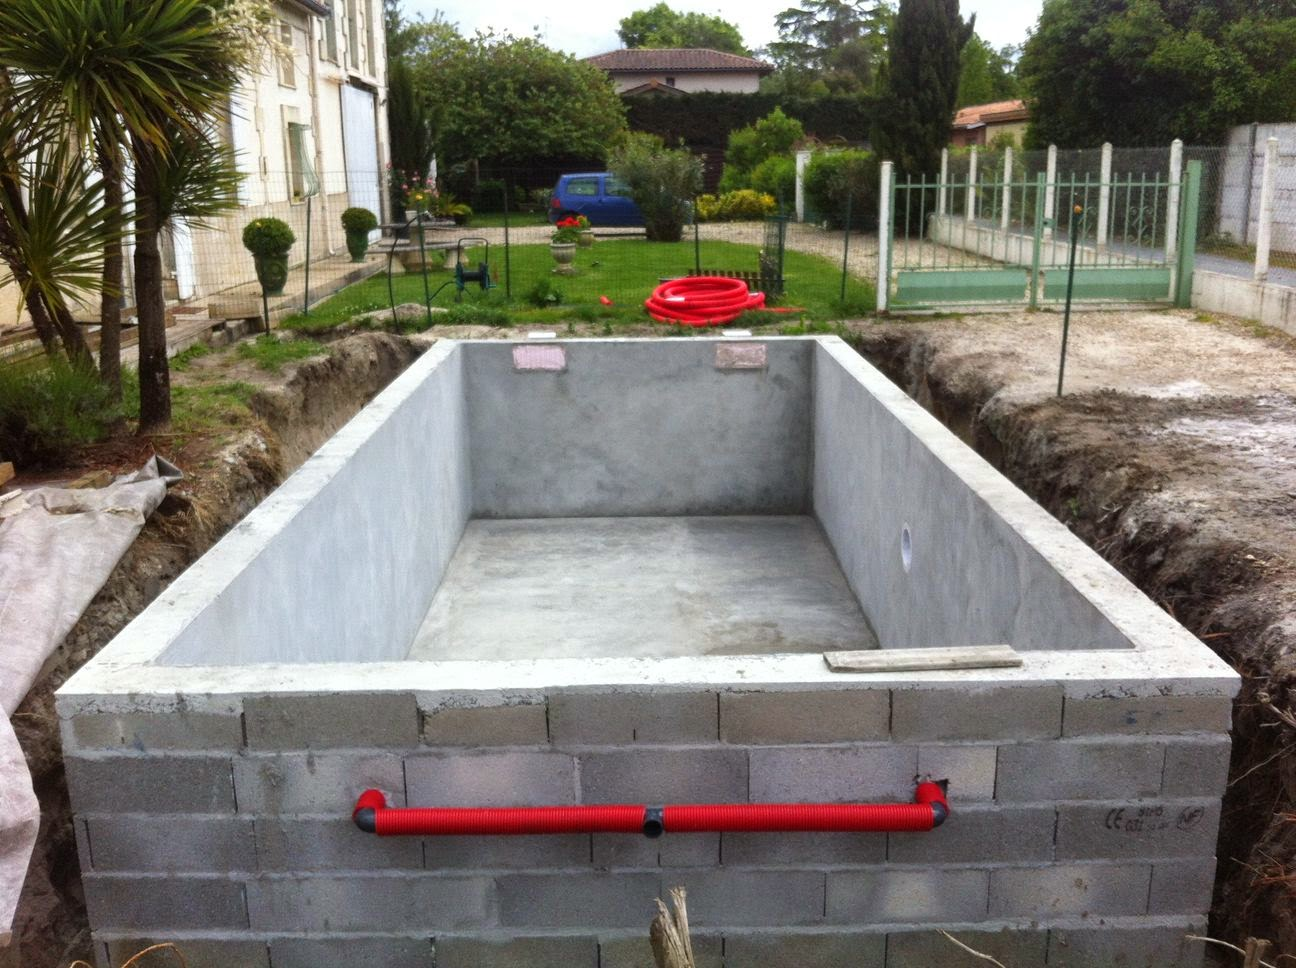 Projet tapes de construction d 39 une piscine en gironde am nagements ext rieurs carports - Autoconstruction piscine ...